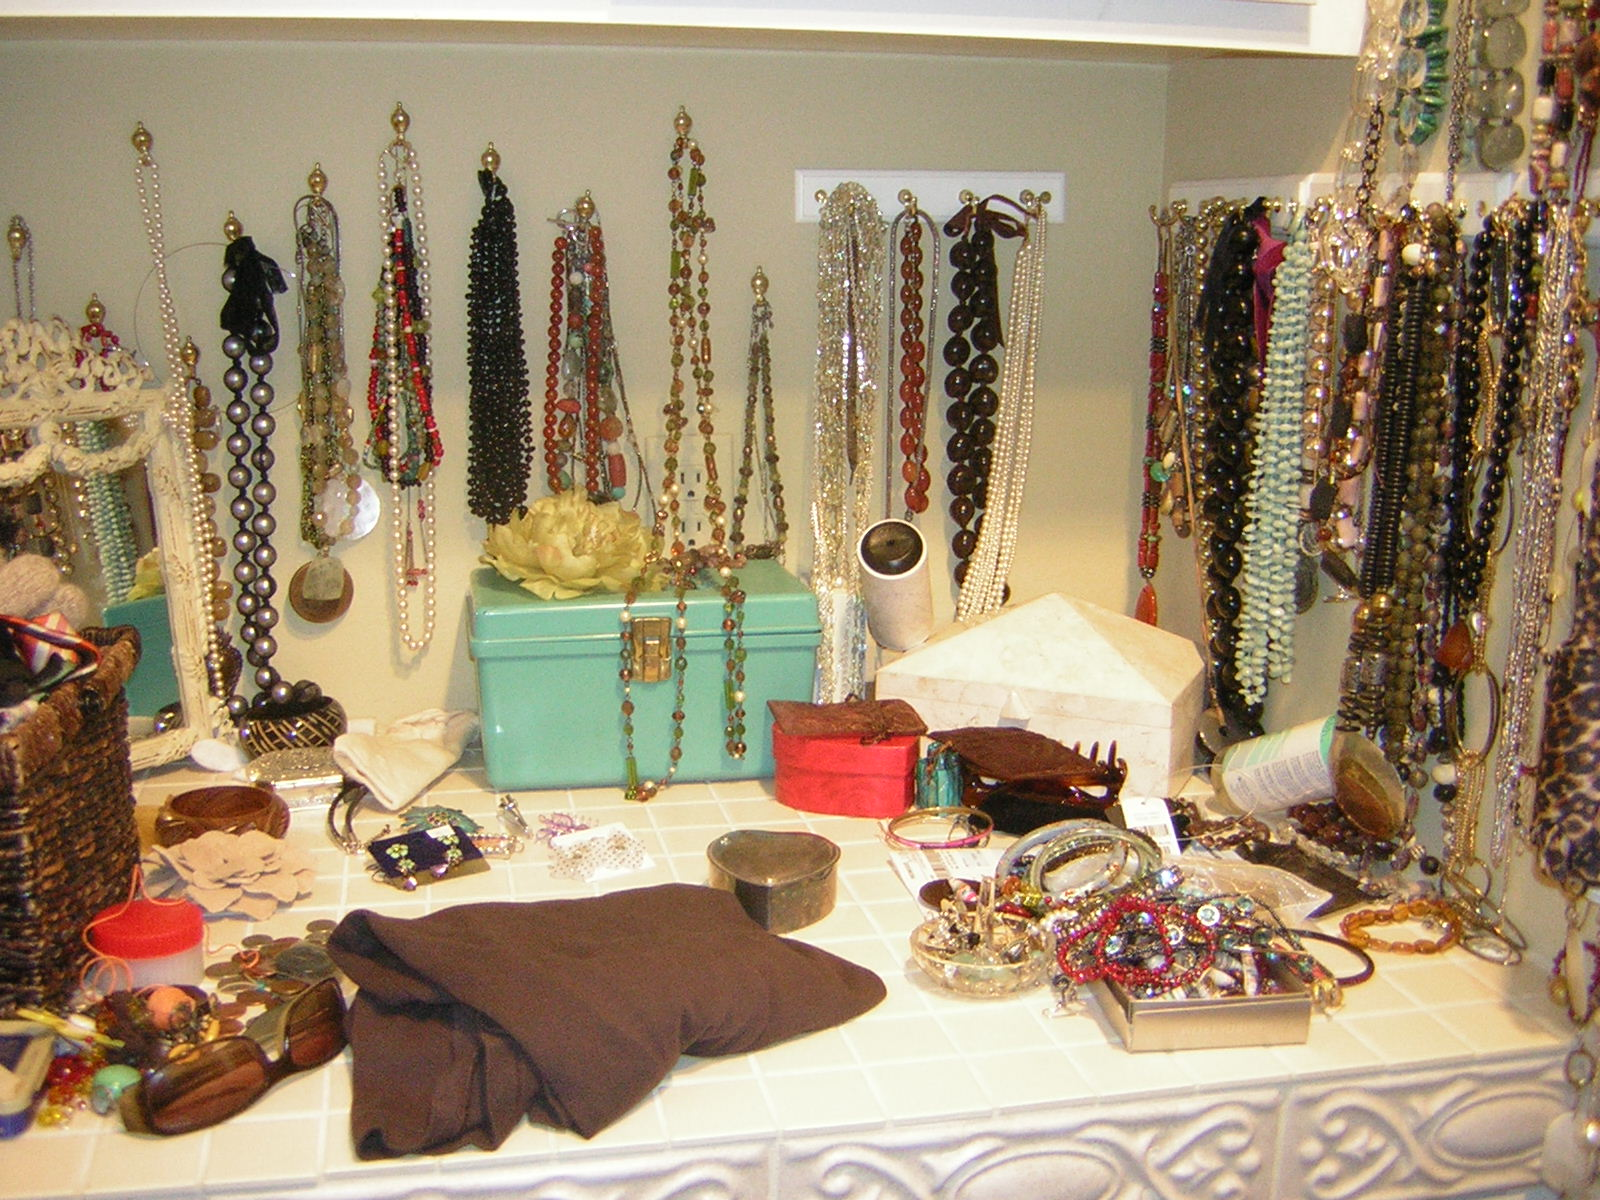 Bracelet Organizer Ideas Jewelry Organizing Ideas What Are Yours San Diego